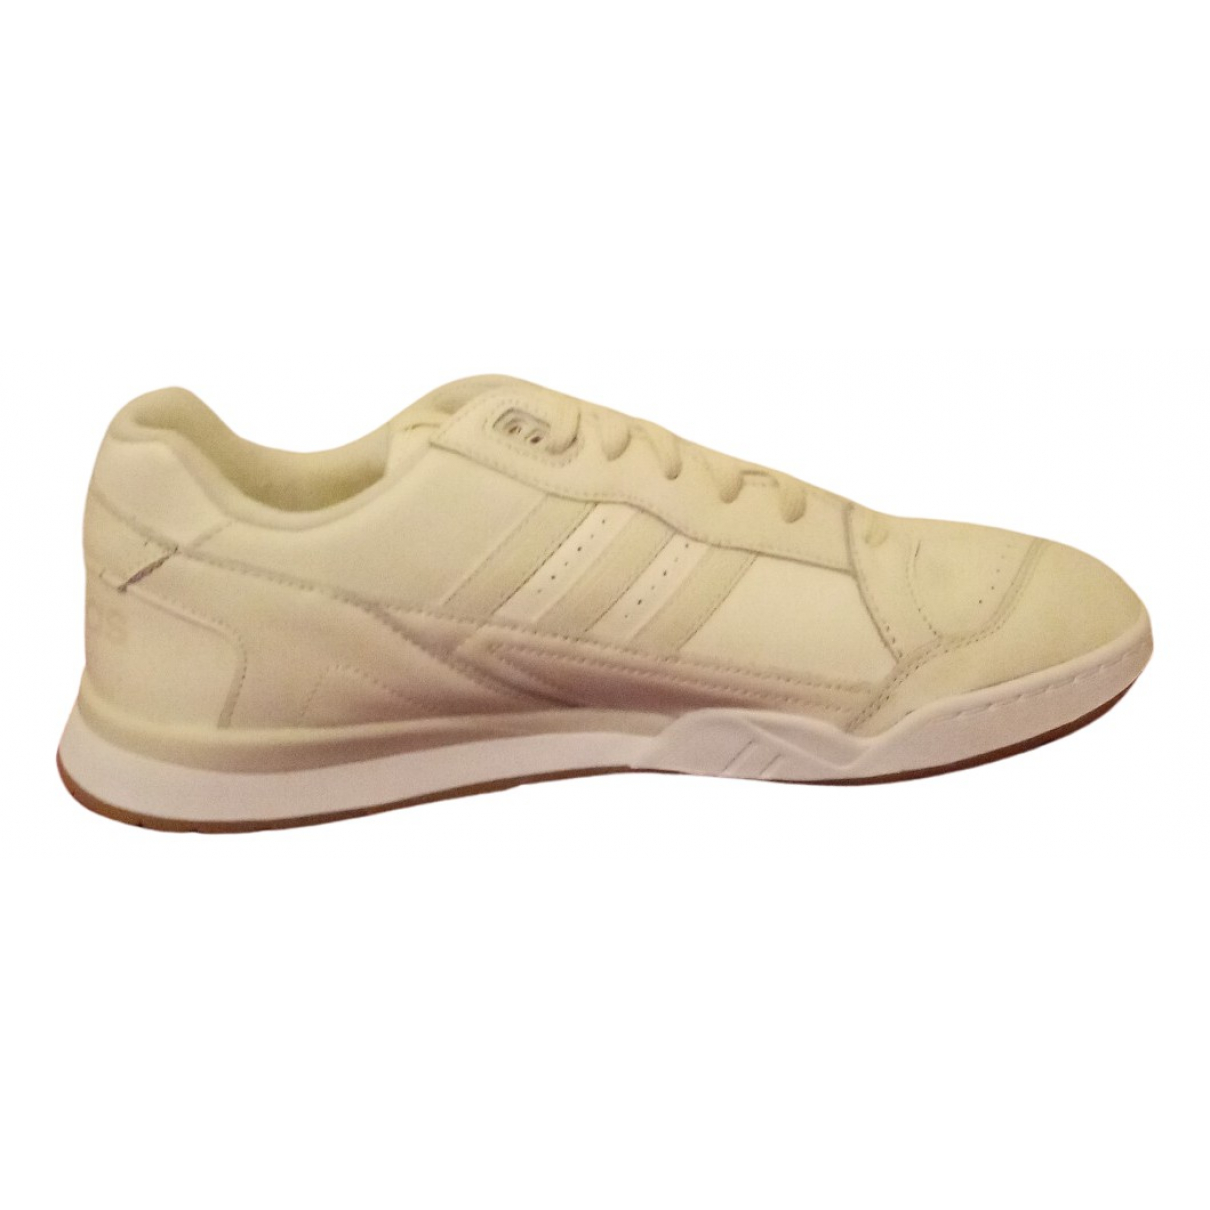 Adidas N White Leather Trainers for Men 10.5 UK